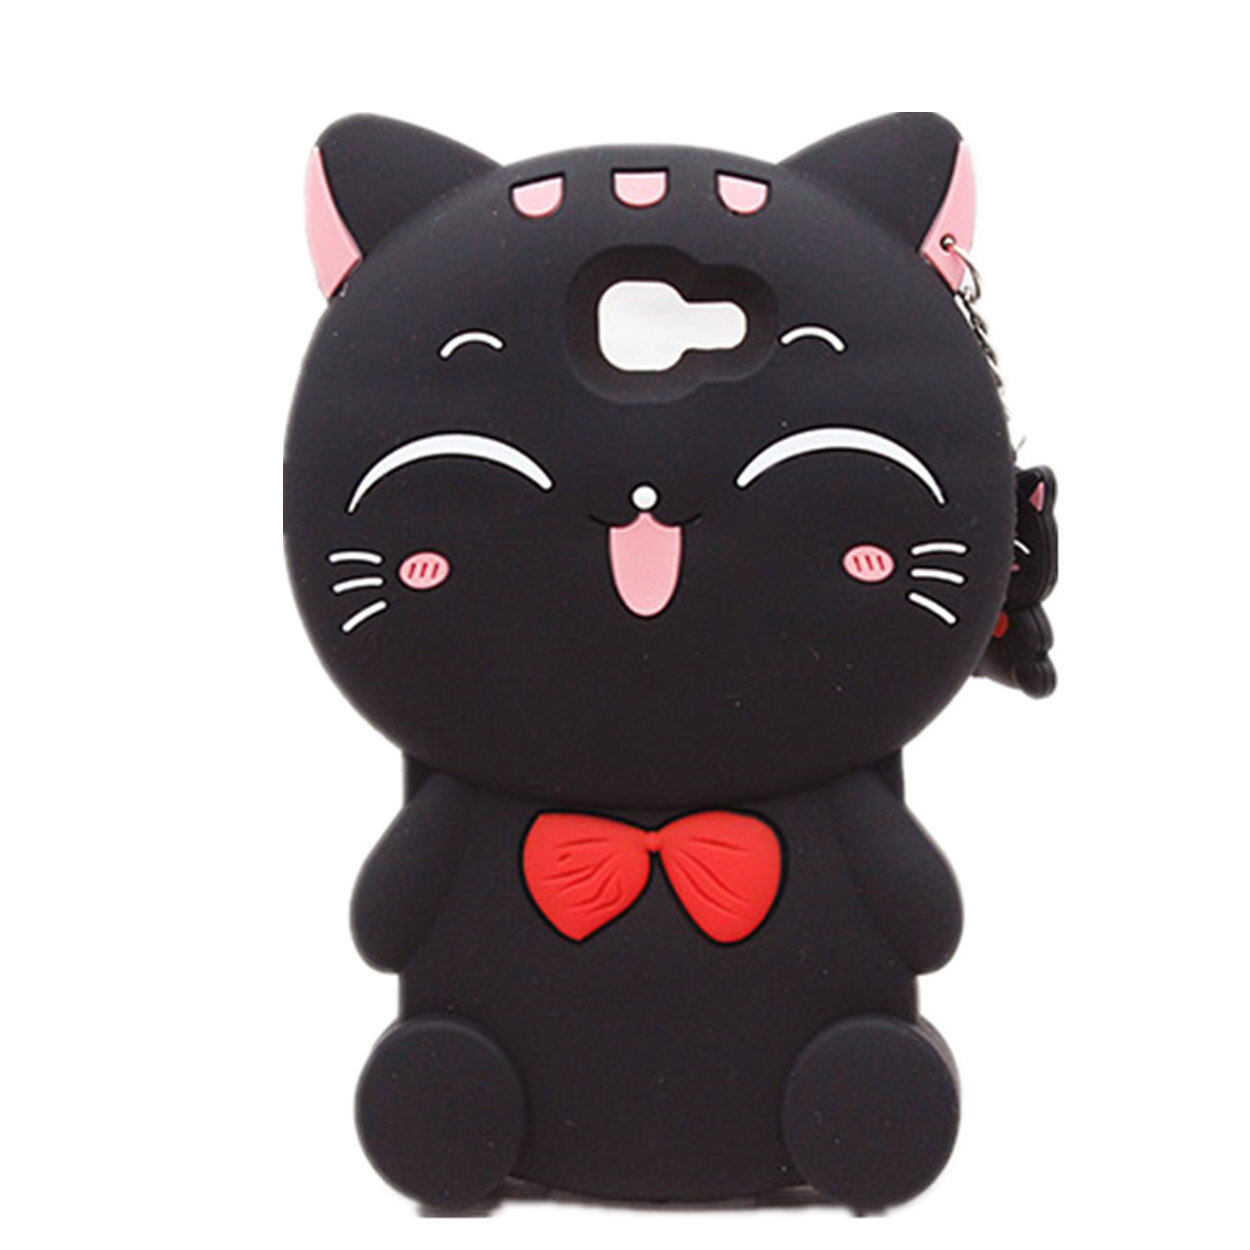 Phone Case For Samsung Galaxy J7 Prime,Lucky Cat Fortune Cat Black White